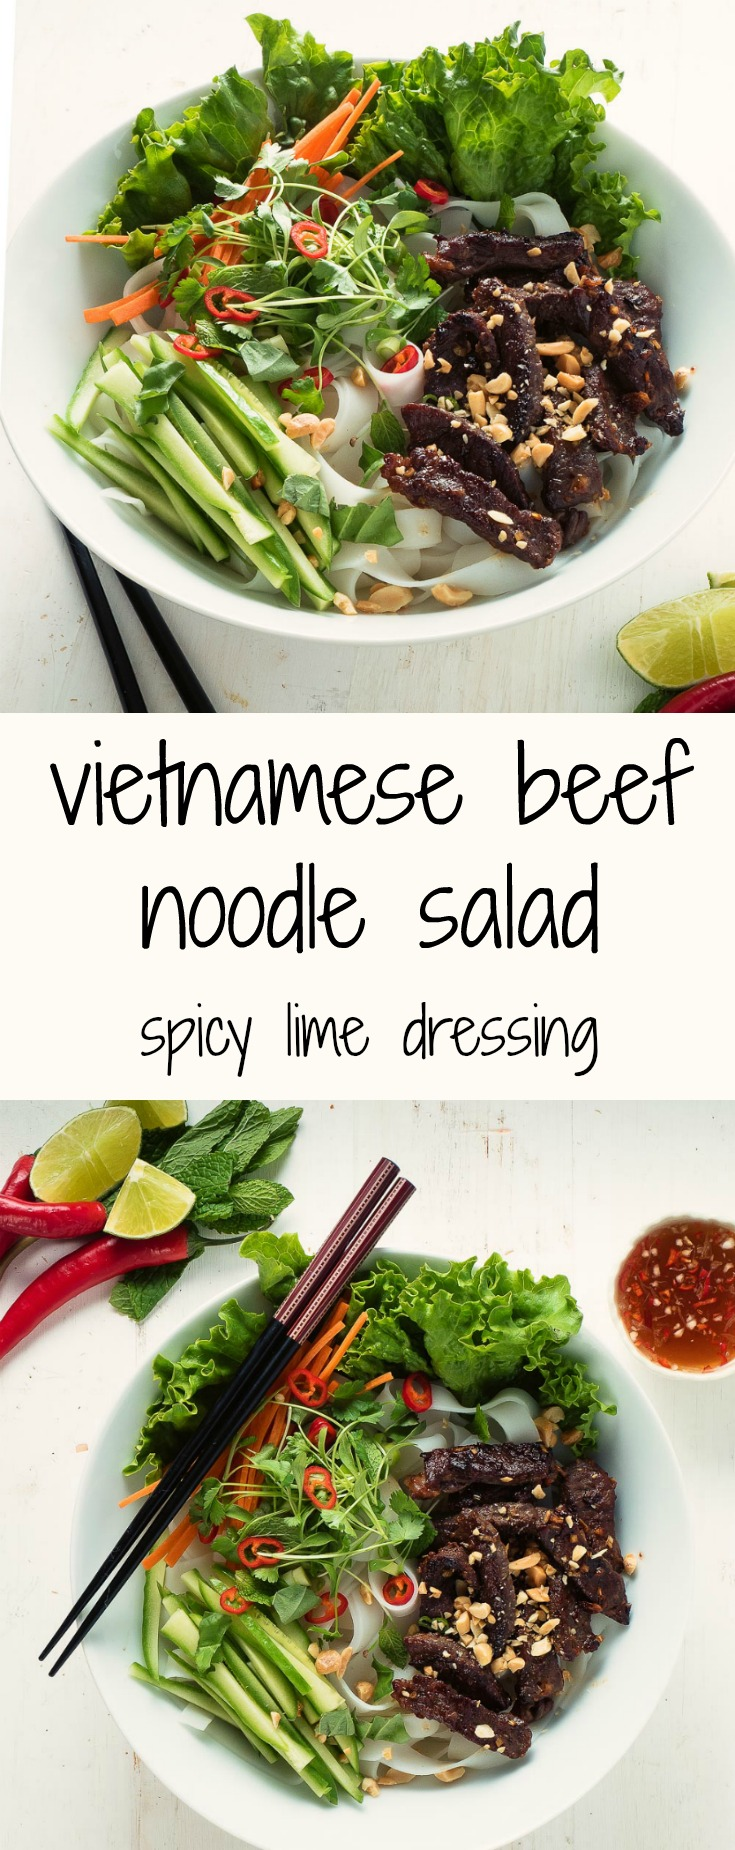 Vietnamese beef noodle salad - perfect for summer.